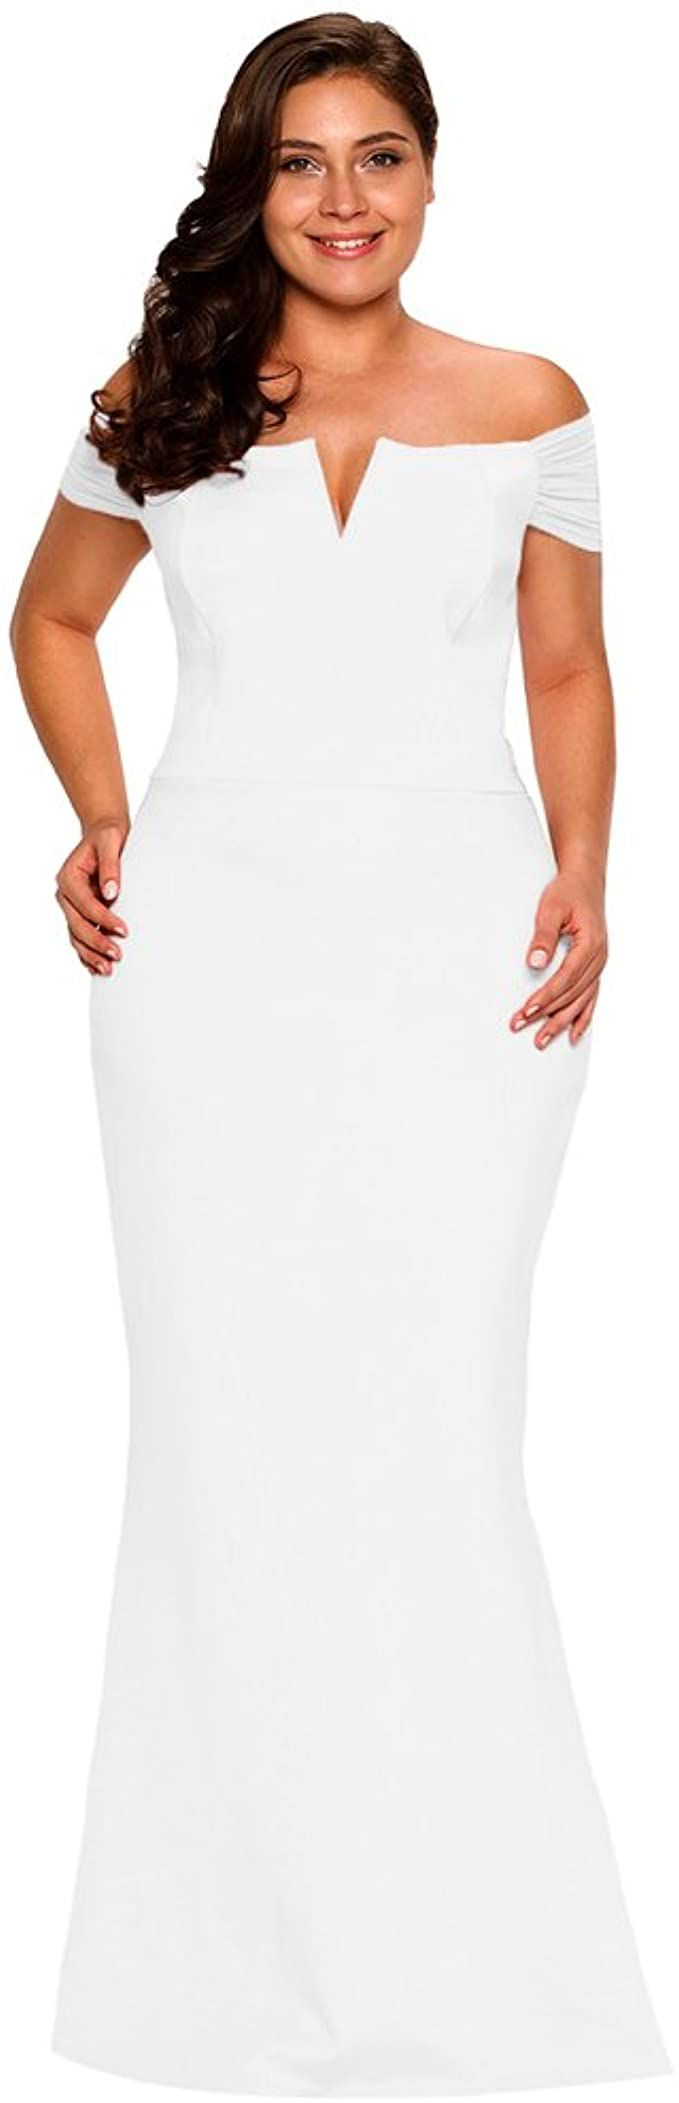 Style B073L9K7WH Lalagen White Size 24 Wedding Tall Height Mermaid Dress on Queenly